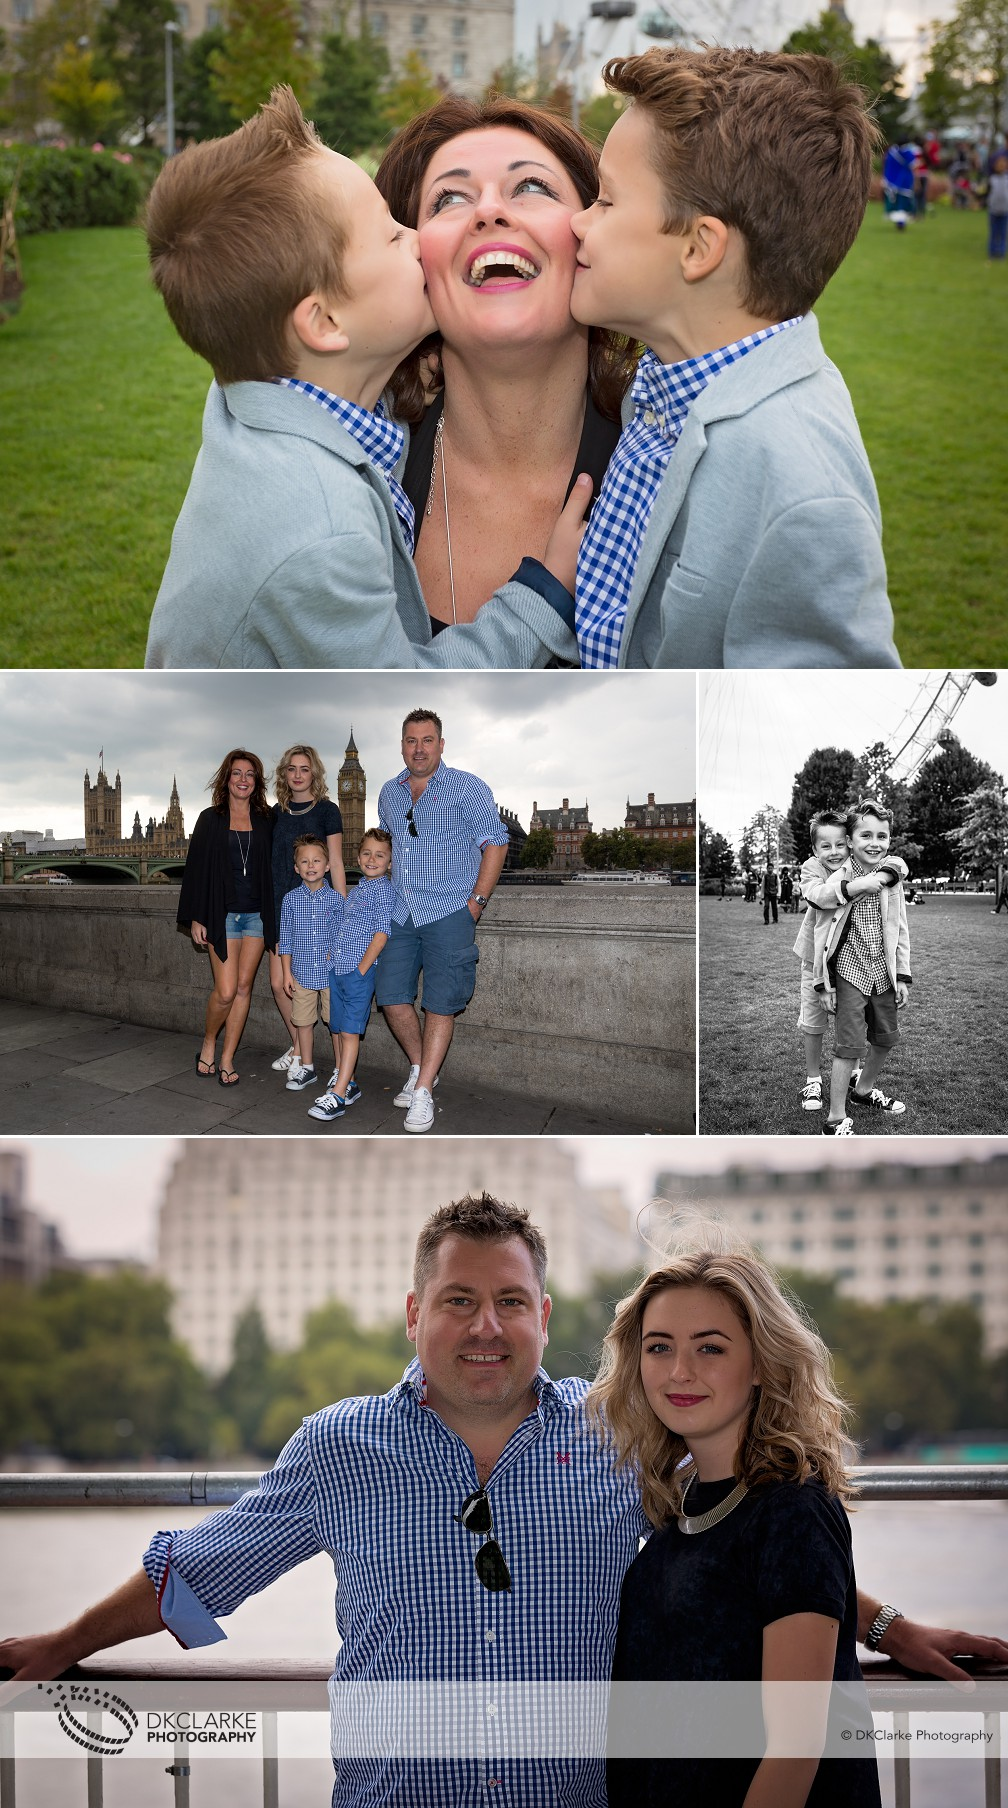 Family photography at the south bank, London